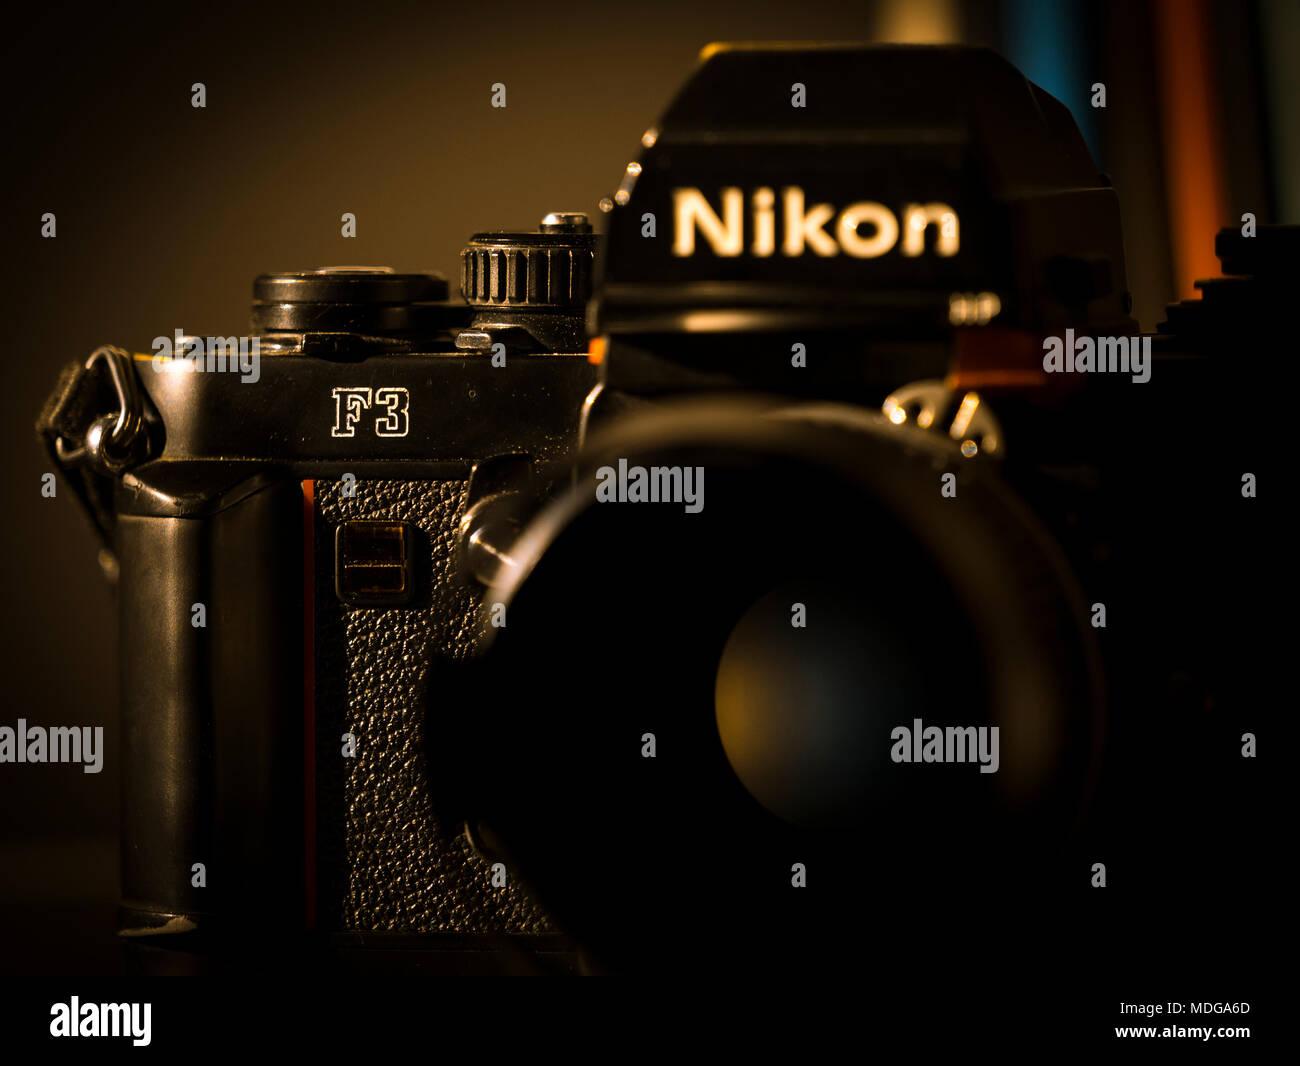 Nikon F3 single lens reflex 35mm professional film camera First launched in 1980 and remained in production until 2001. - Stock Image